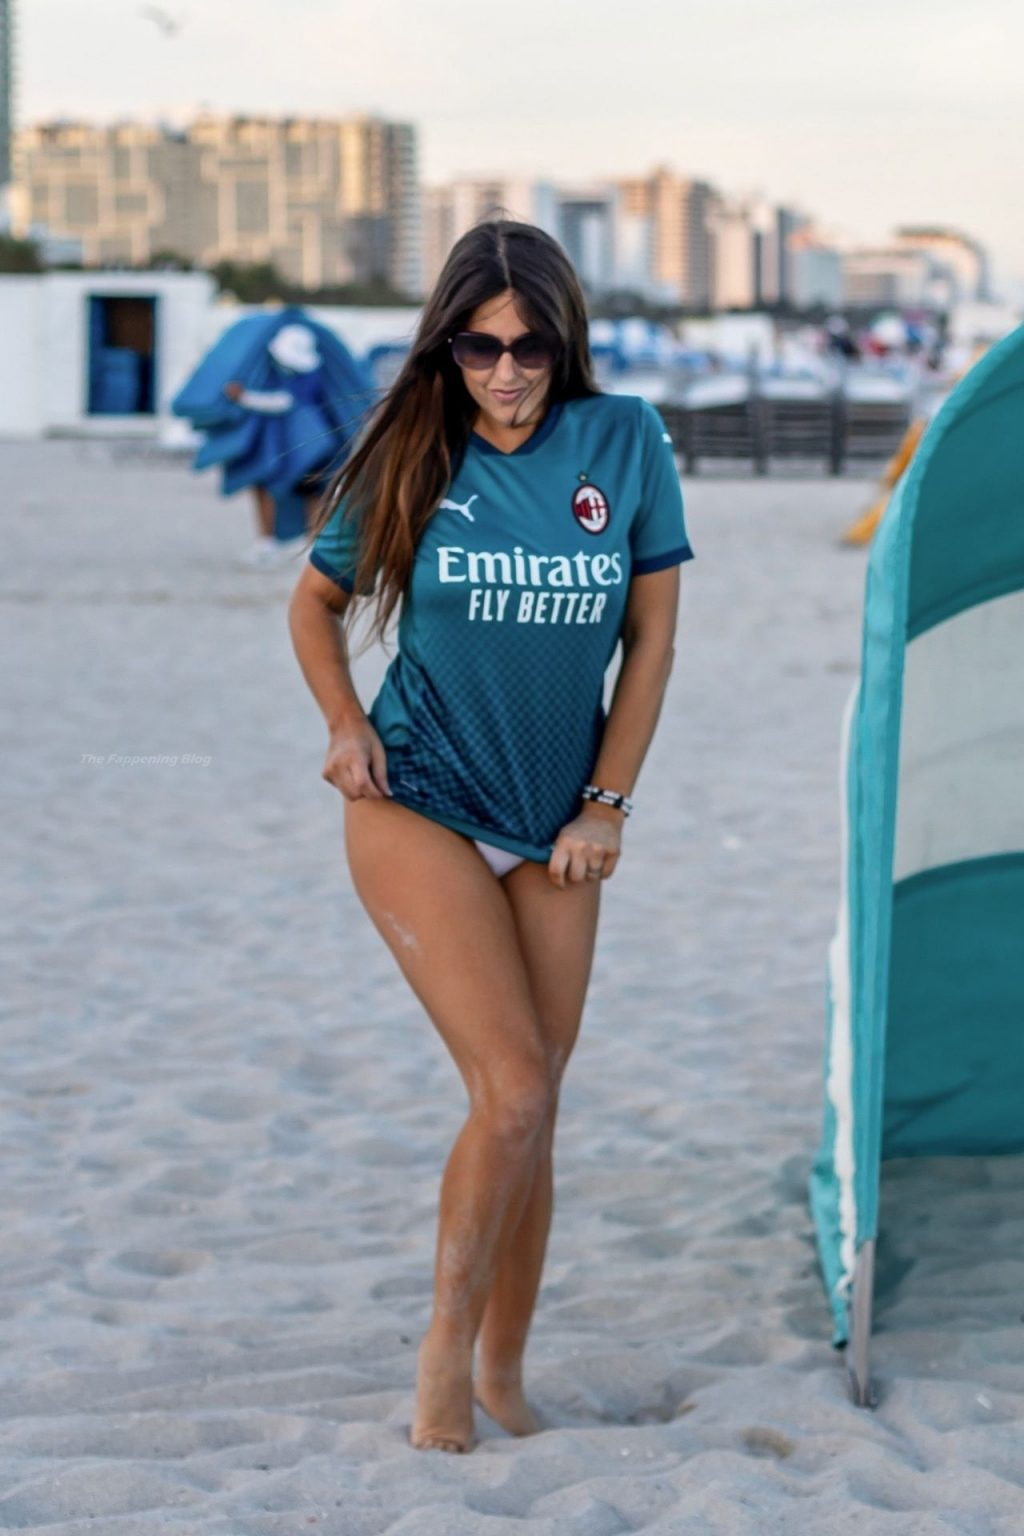 Claudia Romani Shows Her Love for AC Milan (32 Photos)